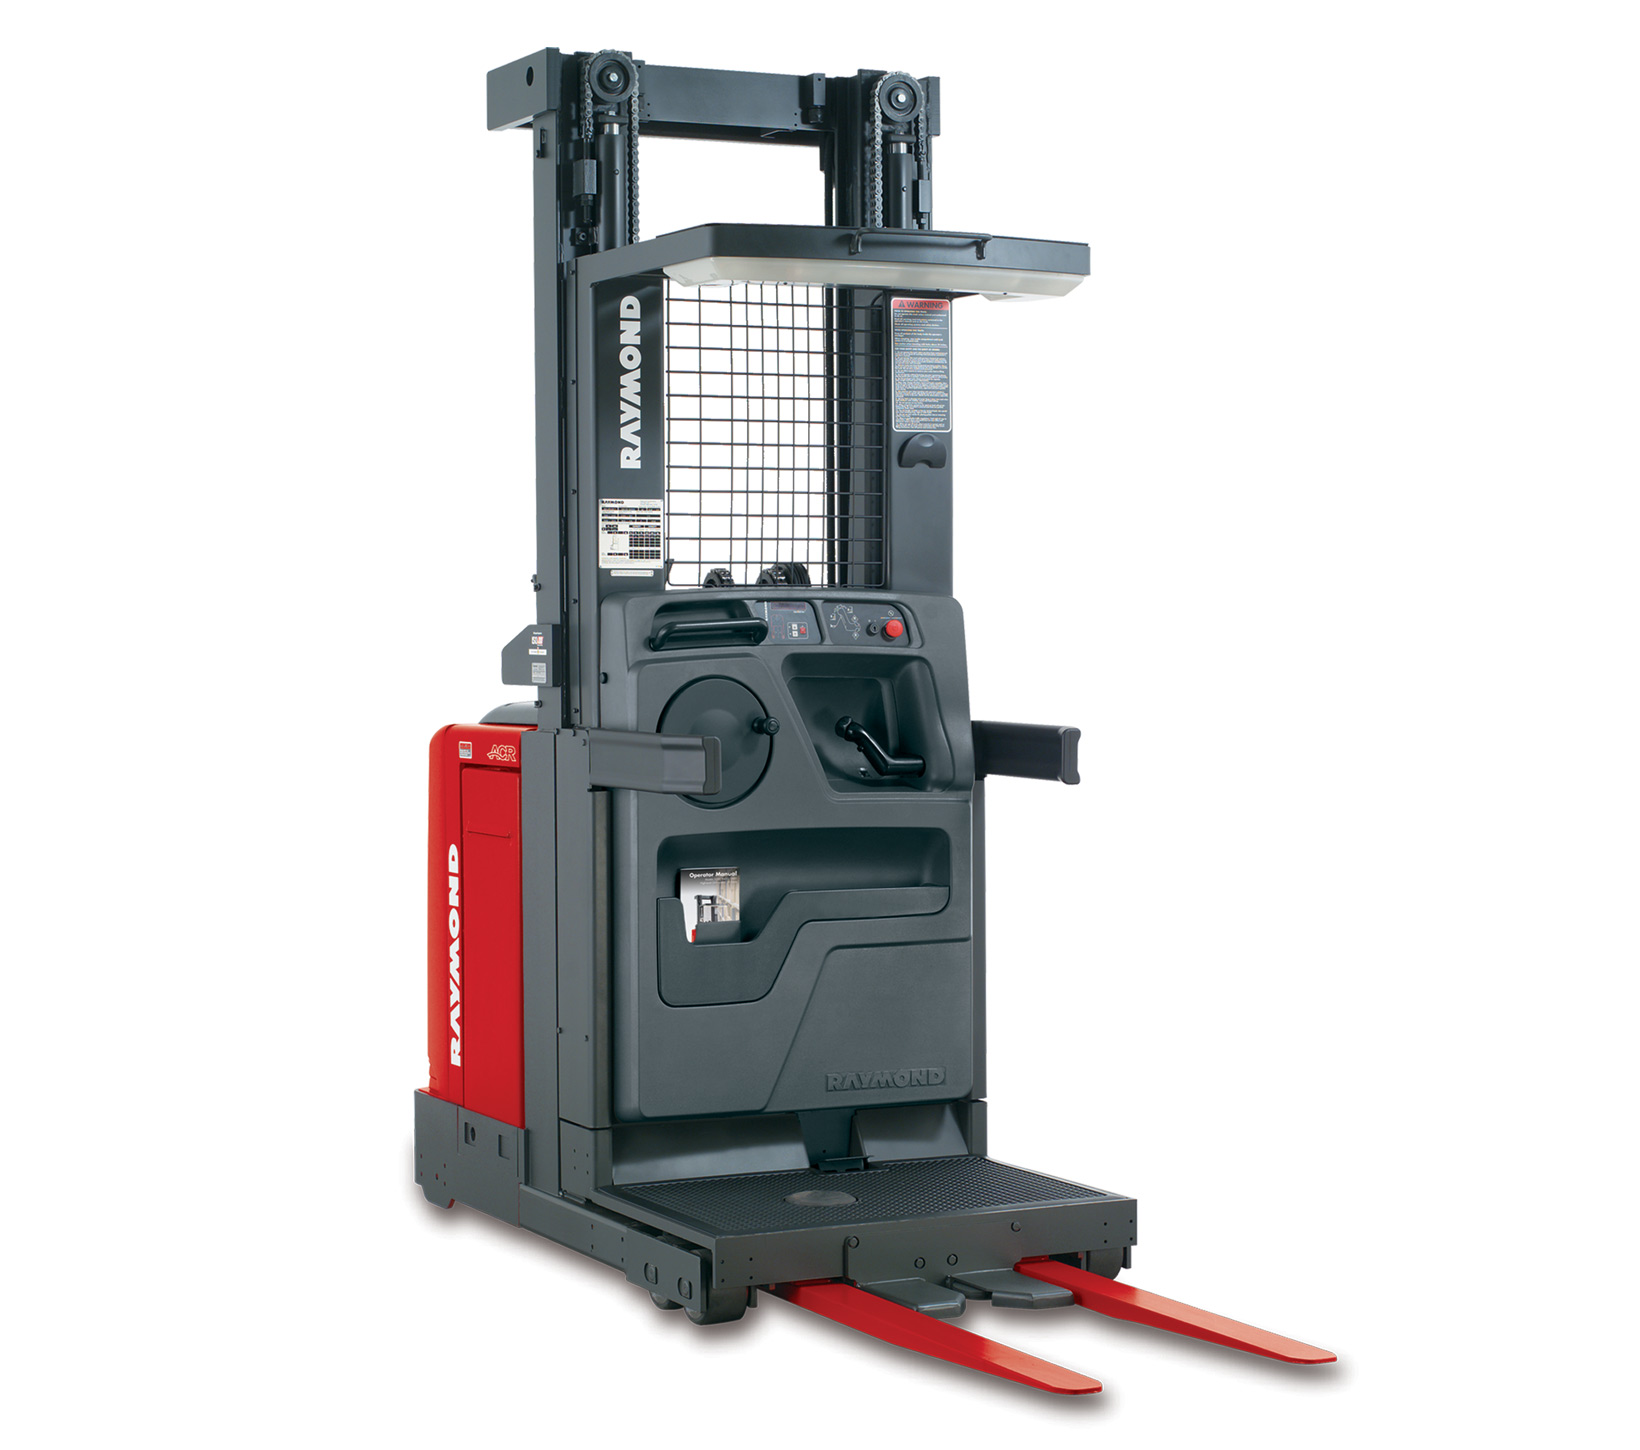 Raymond 5500 Order Picker Forklift | 5000 Series Order Pickers